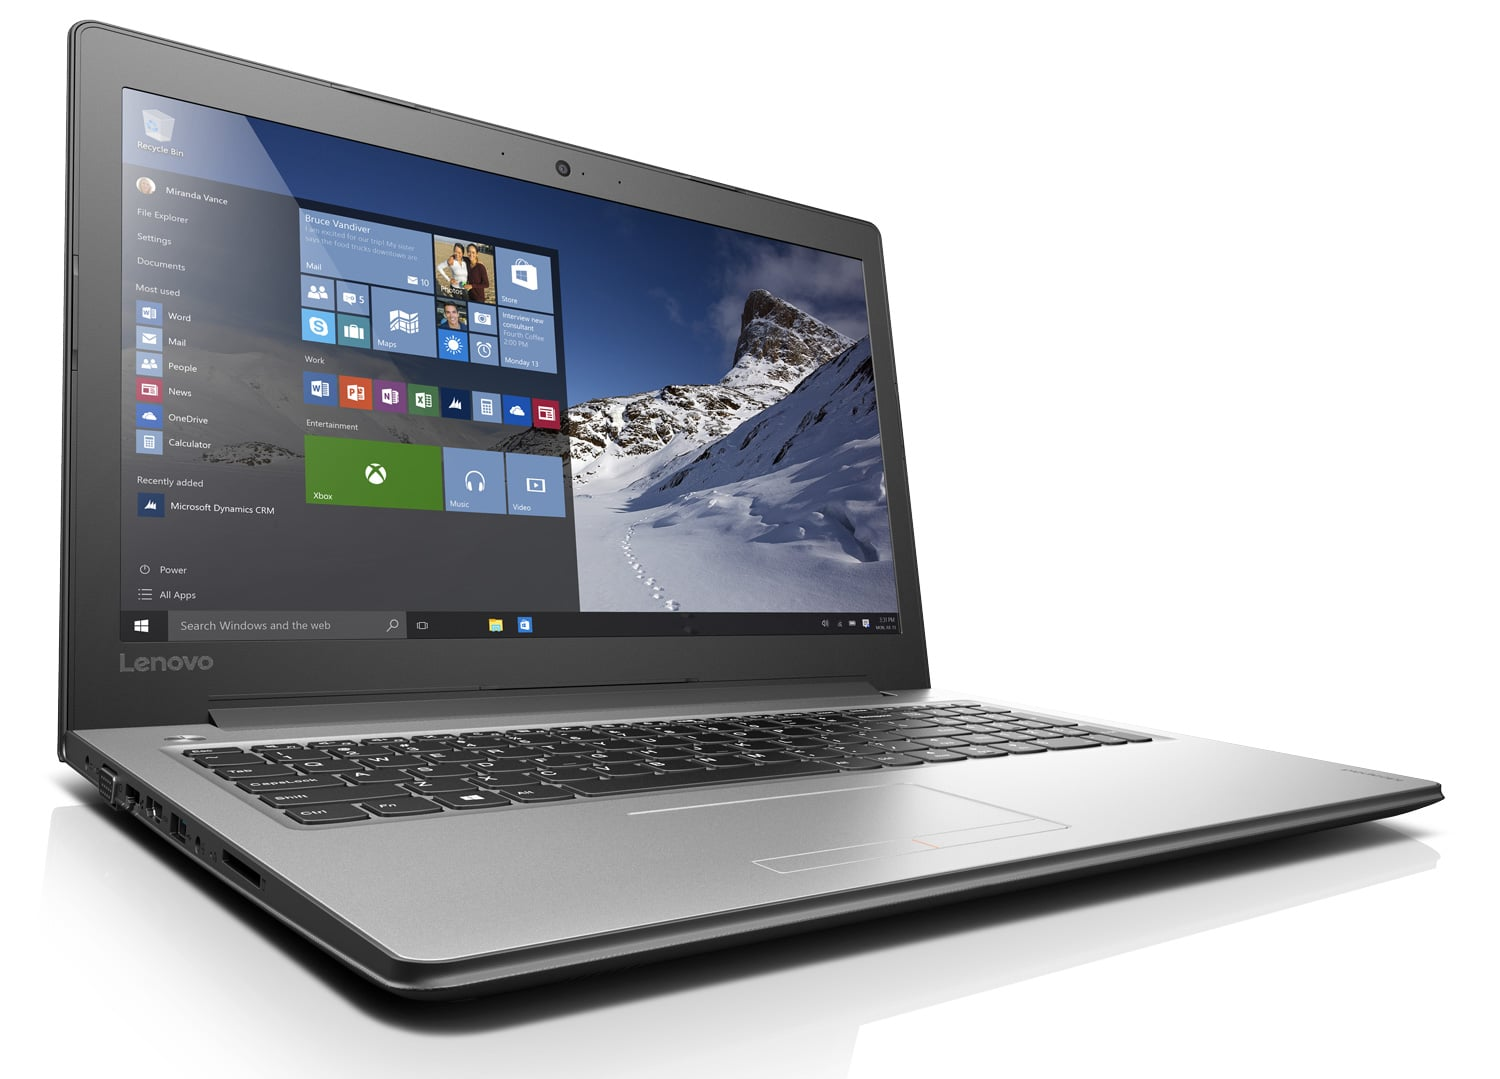 Lenovo IdeaPad 310-15IKB à 599€, PC portable 15 pouces Full SSD i5 Kaby 920M